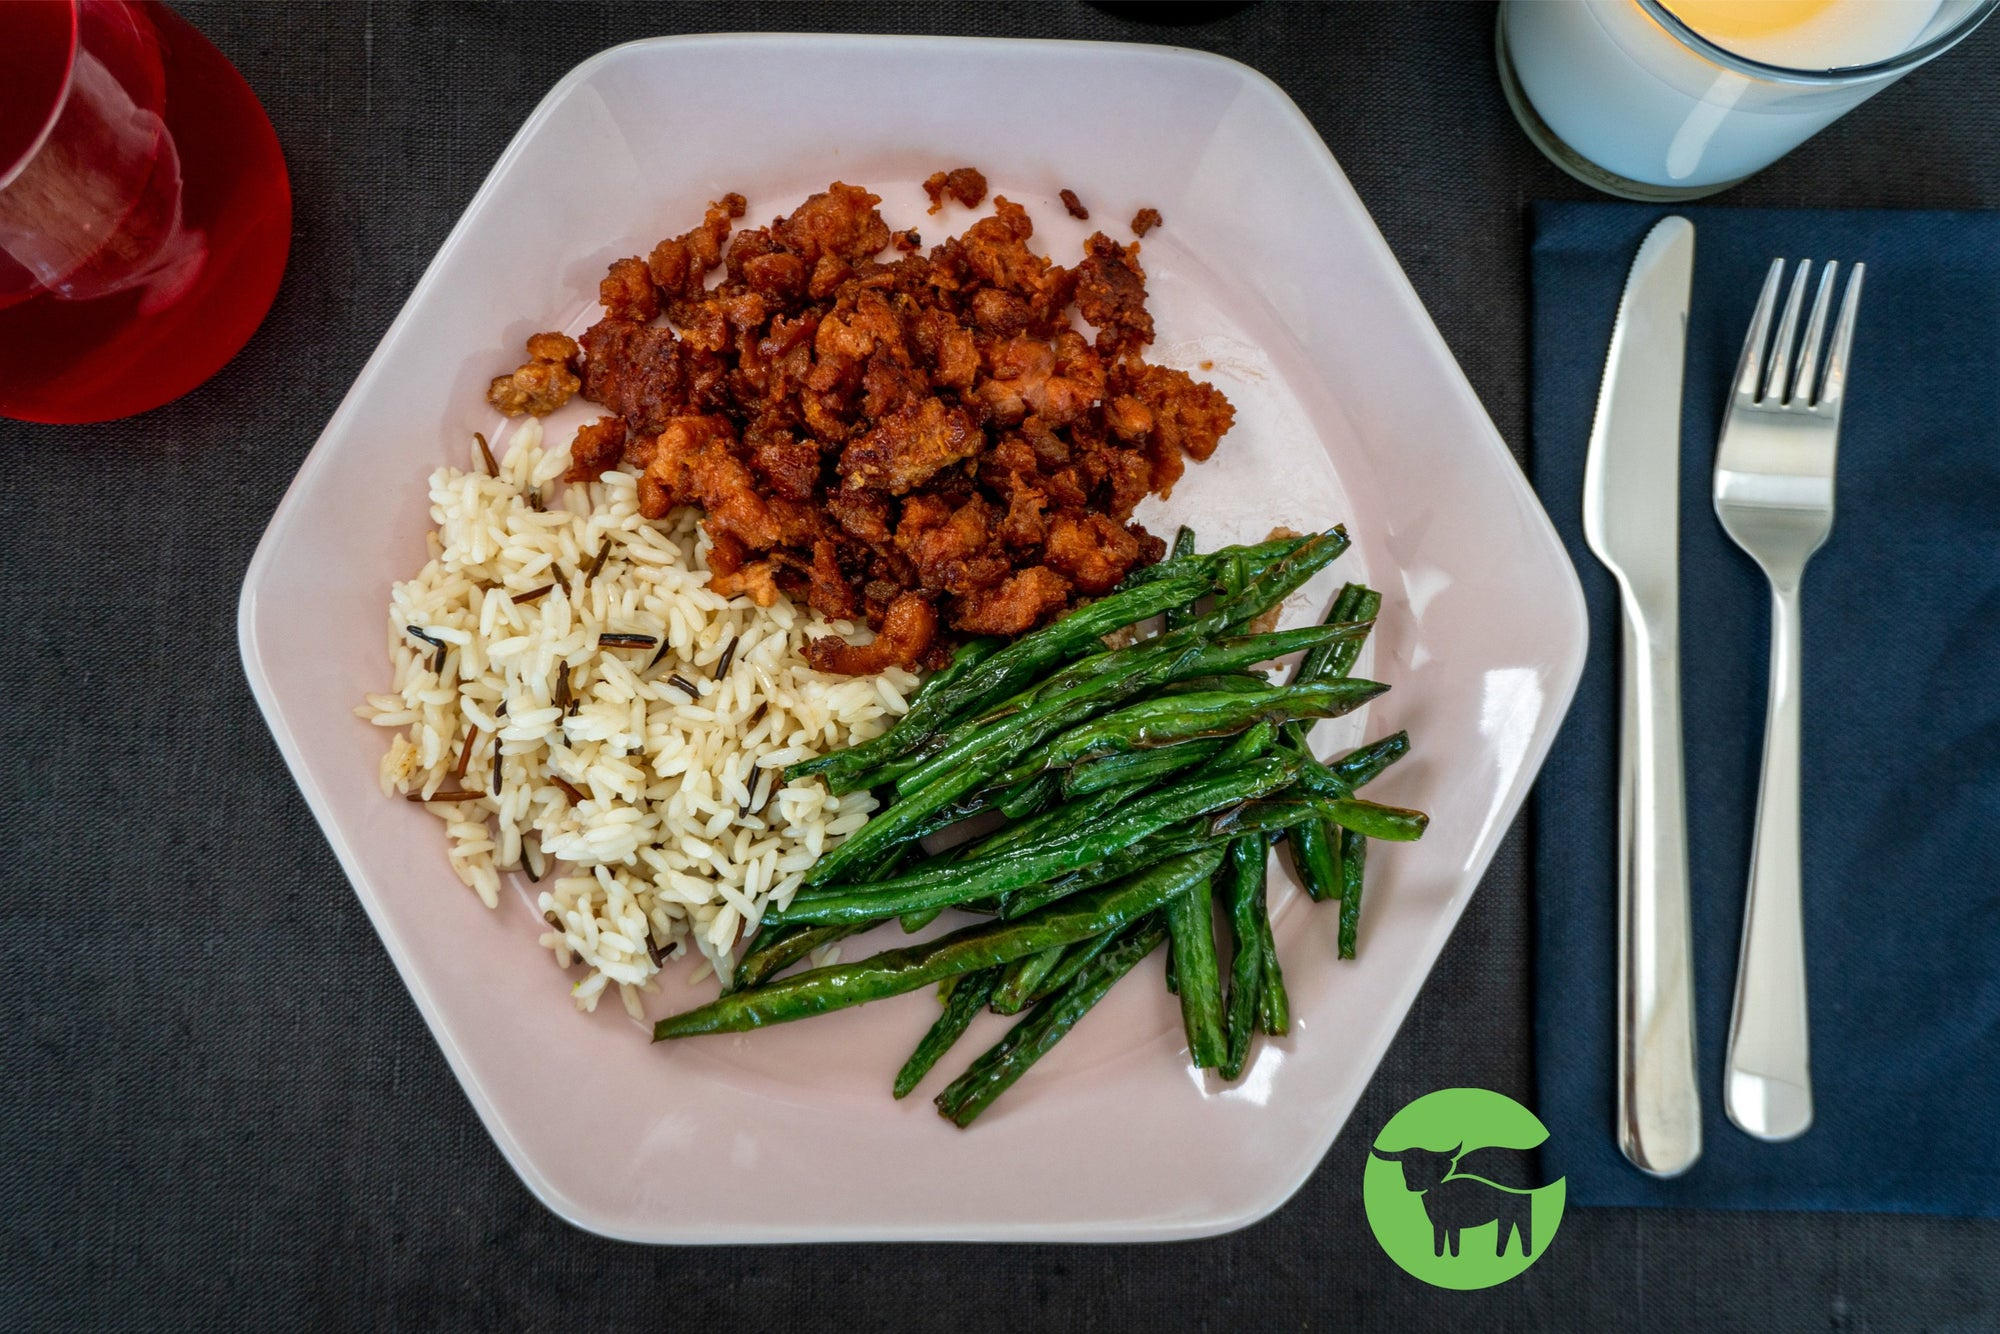 Beyond Meat Ground with Green Beans and Wild Rice Meal